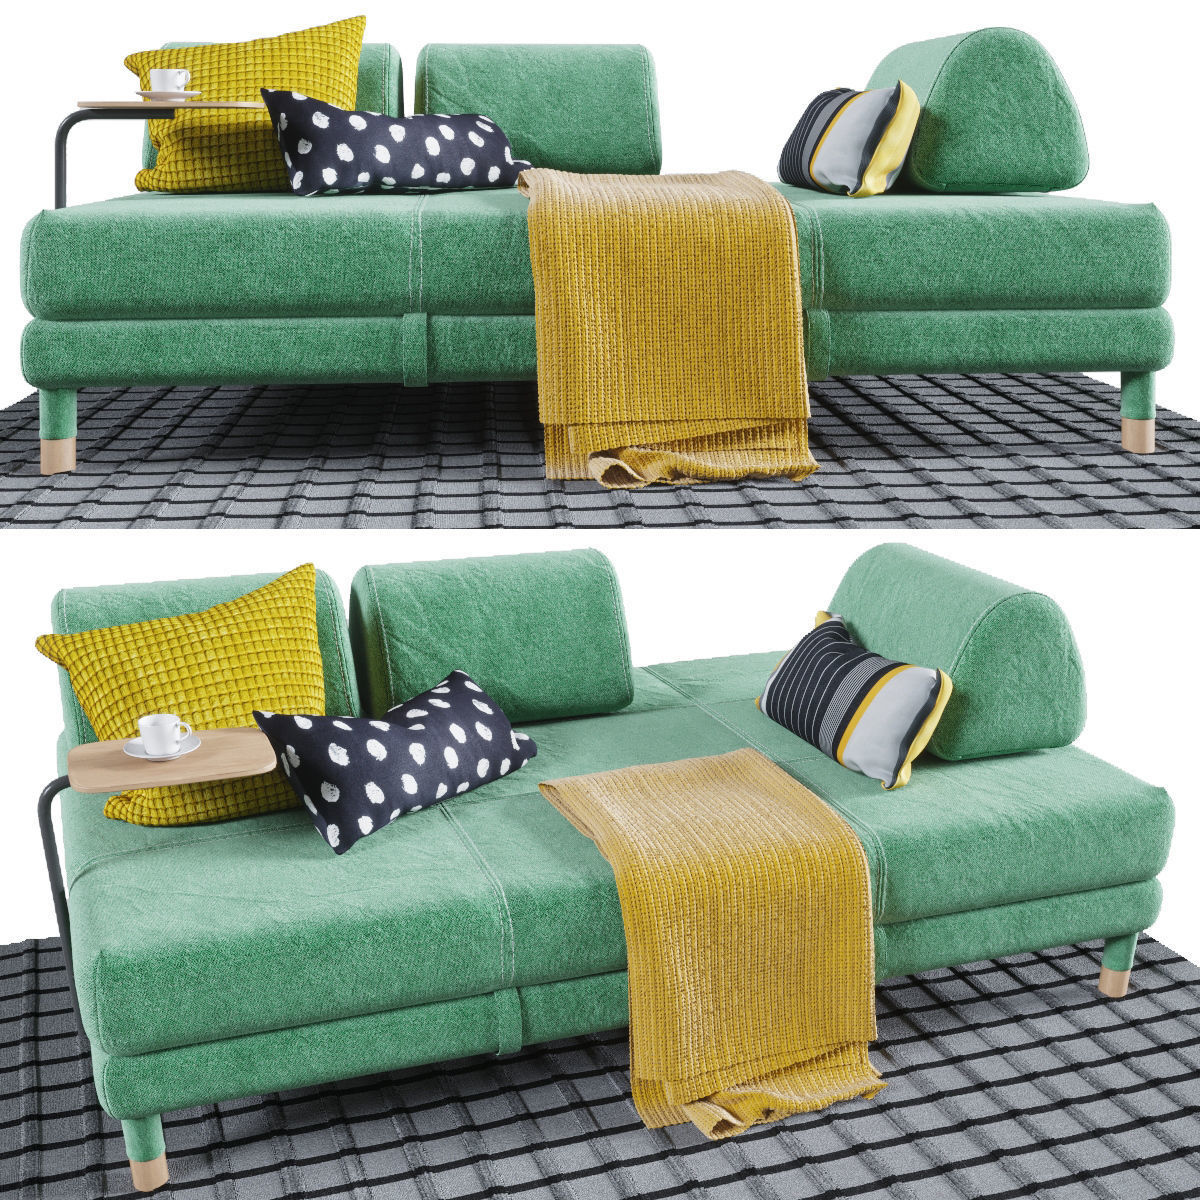 Admirable Flottebo Sofa Bed With Side Table 3D Model Bralicious Painted Fabric Chair Ideas Braliciousco